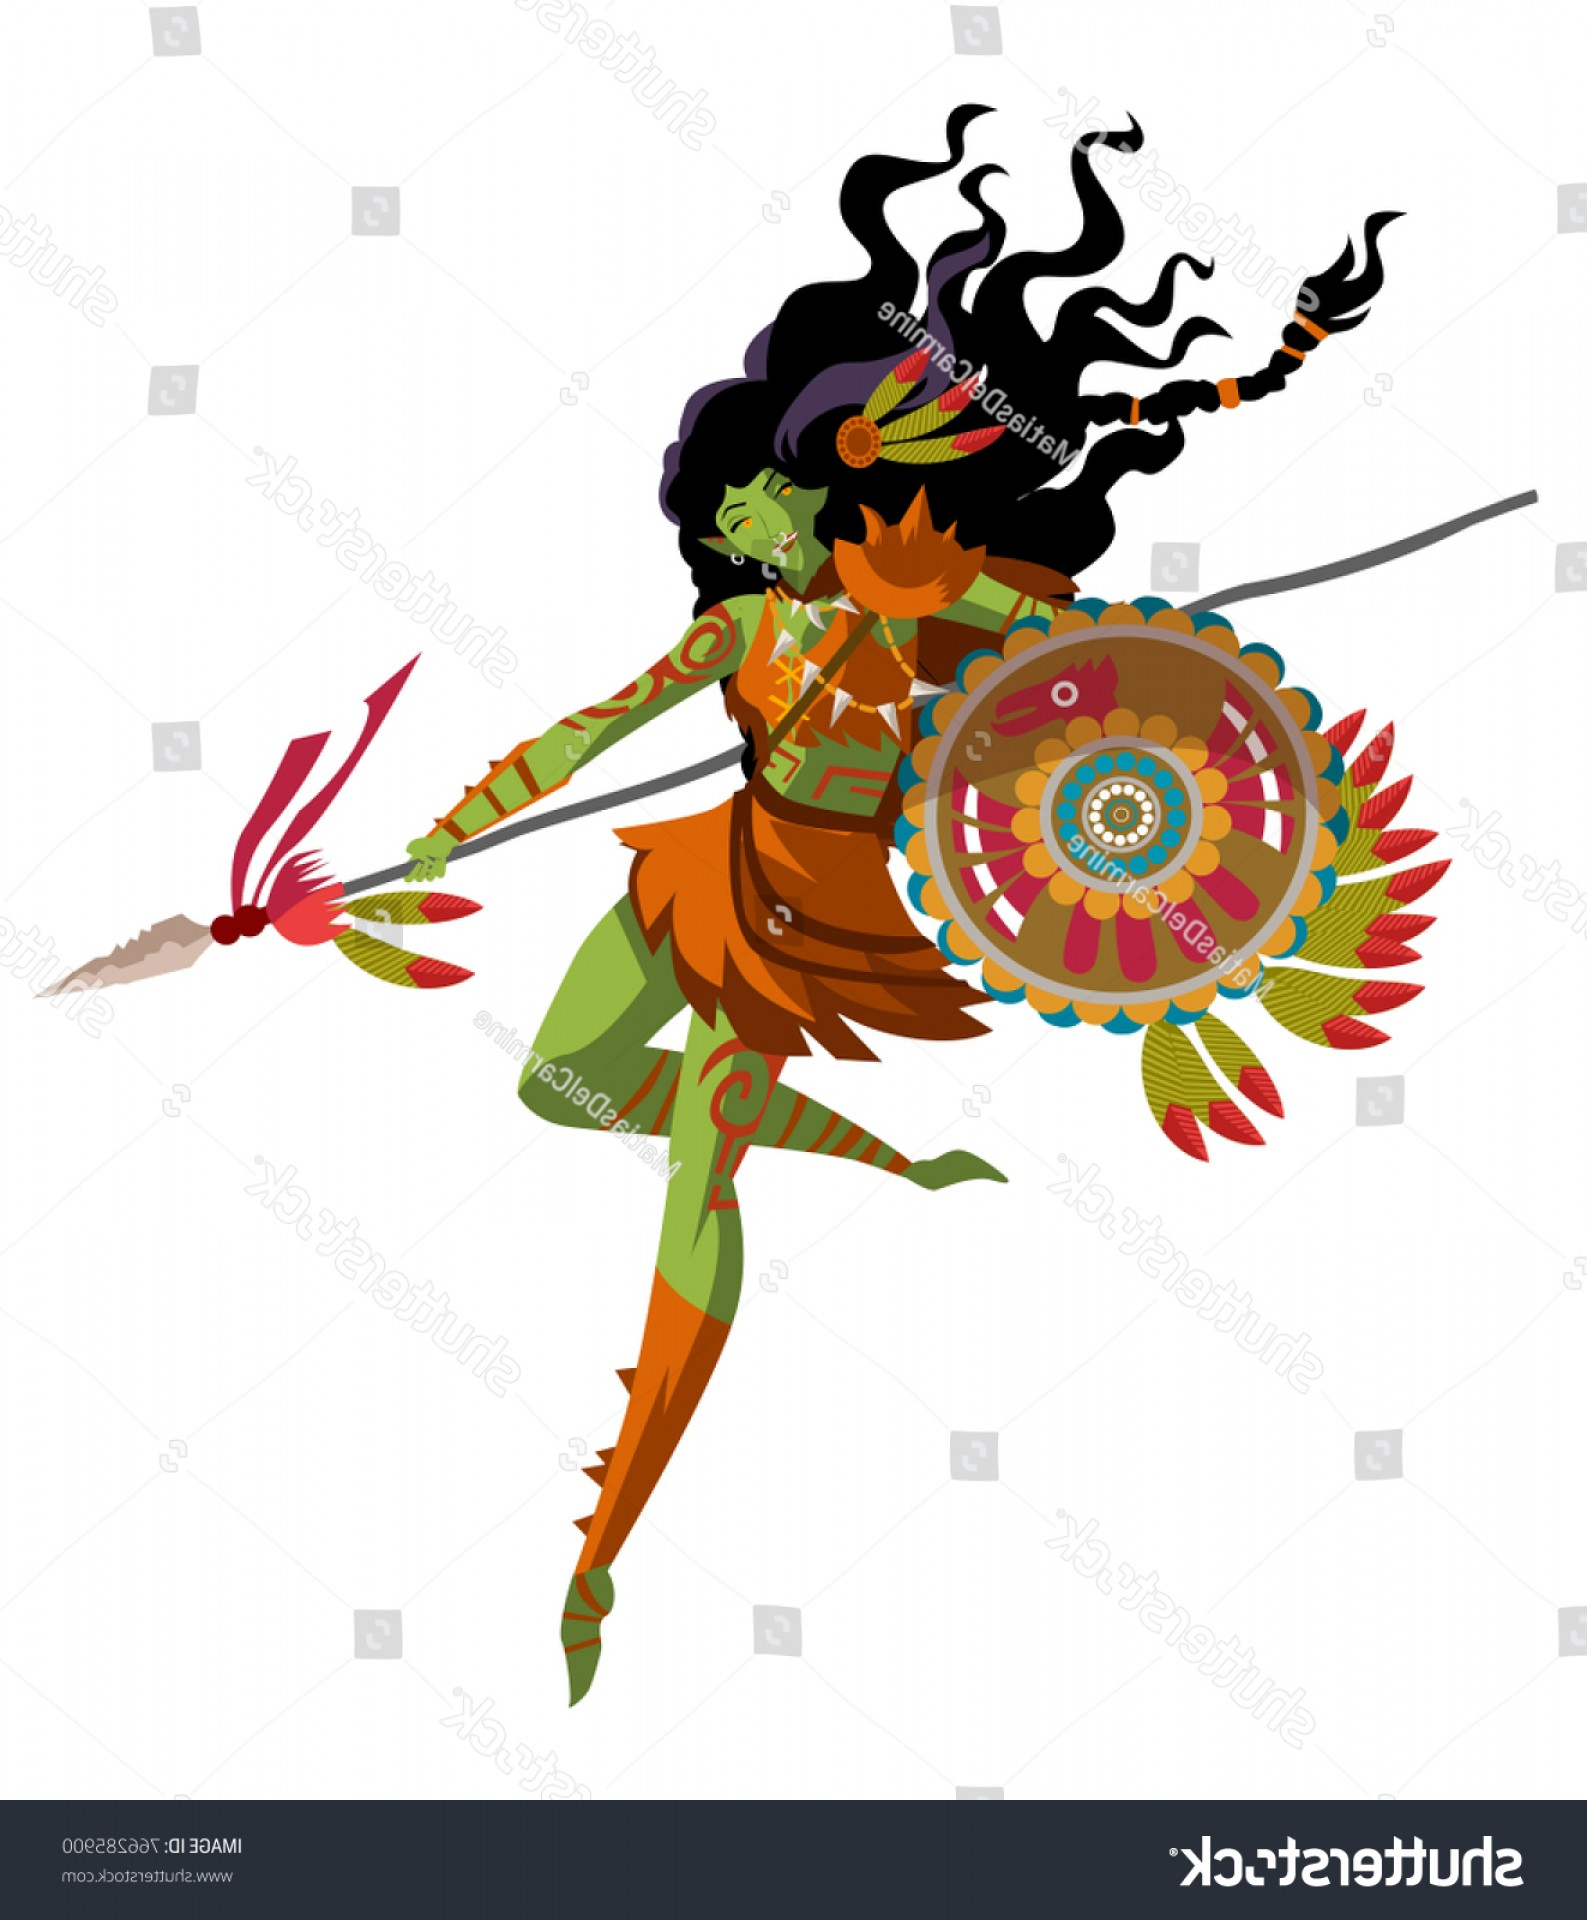 Trolls Poppy And Branch Vector Art: Fantasy Huntress Troll Orc Woman Creature